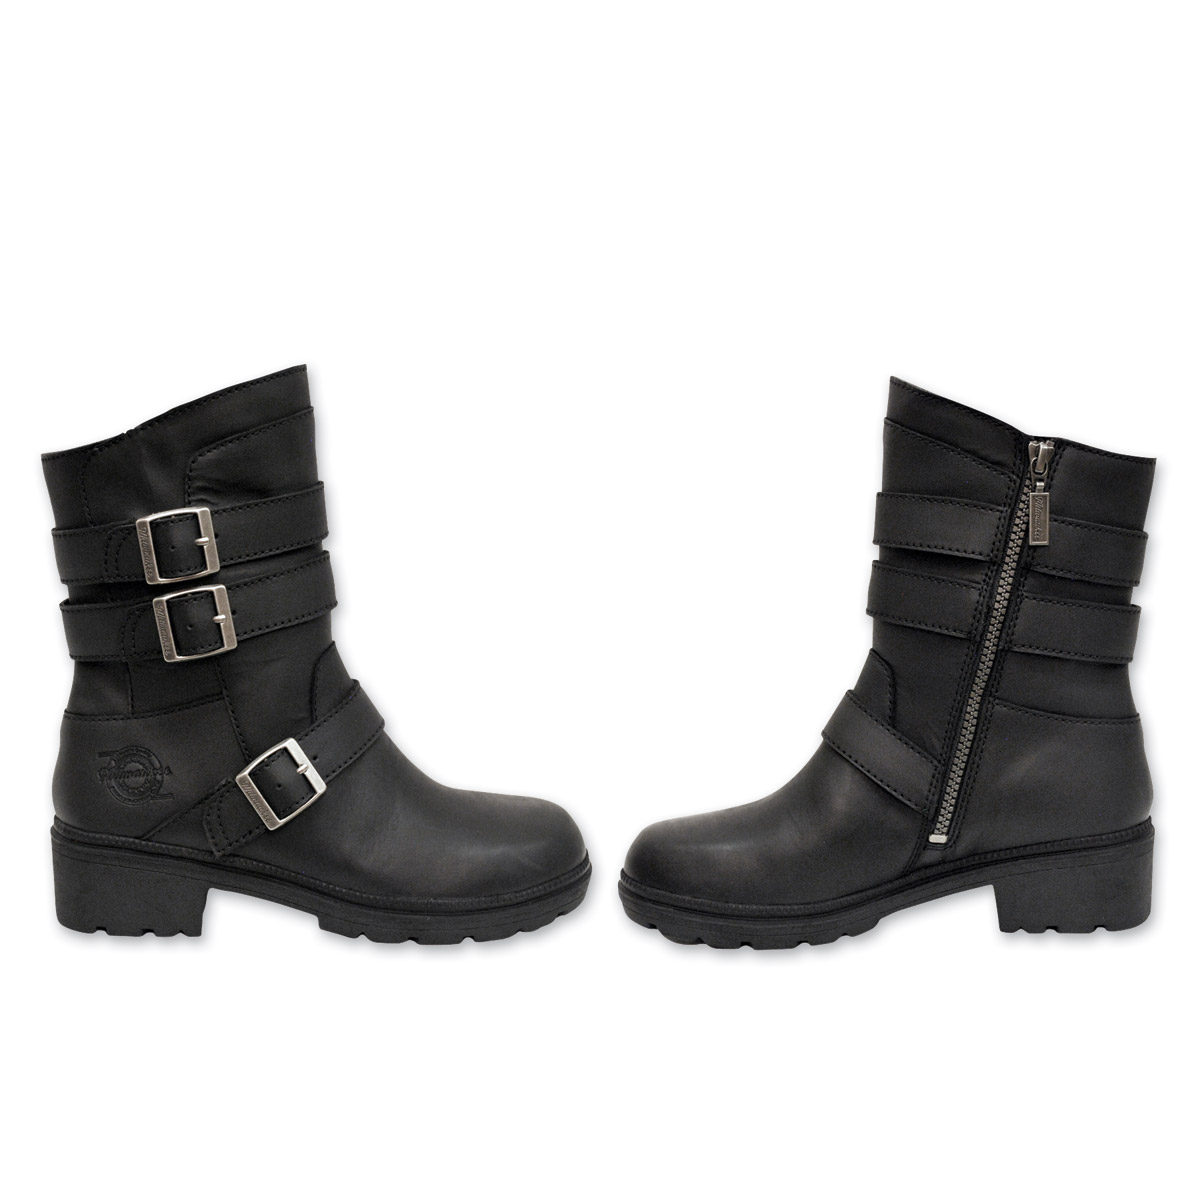 Women's Motorcycle Boots | J&P Cycles